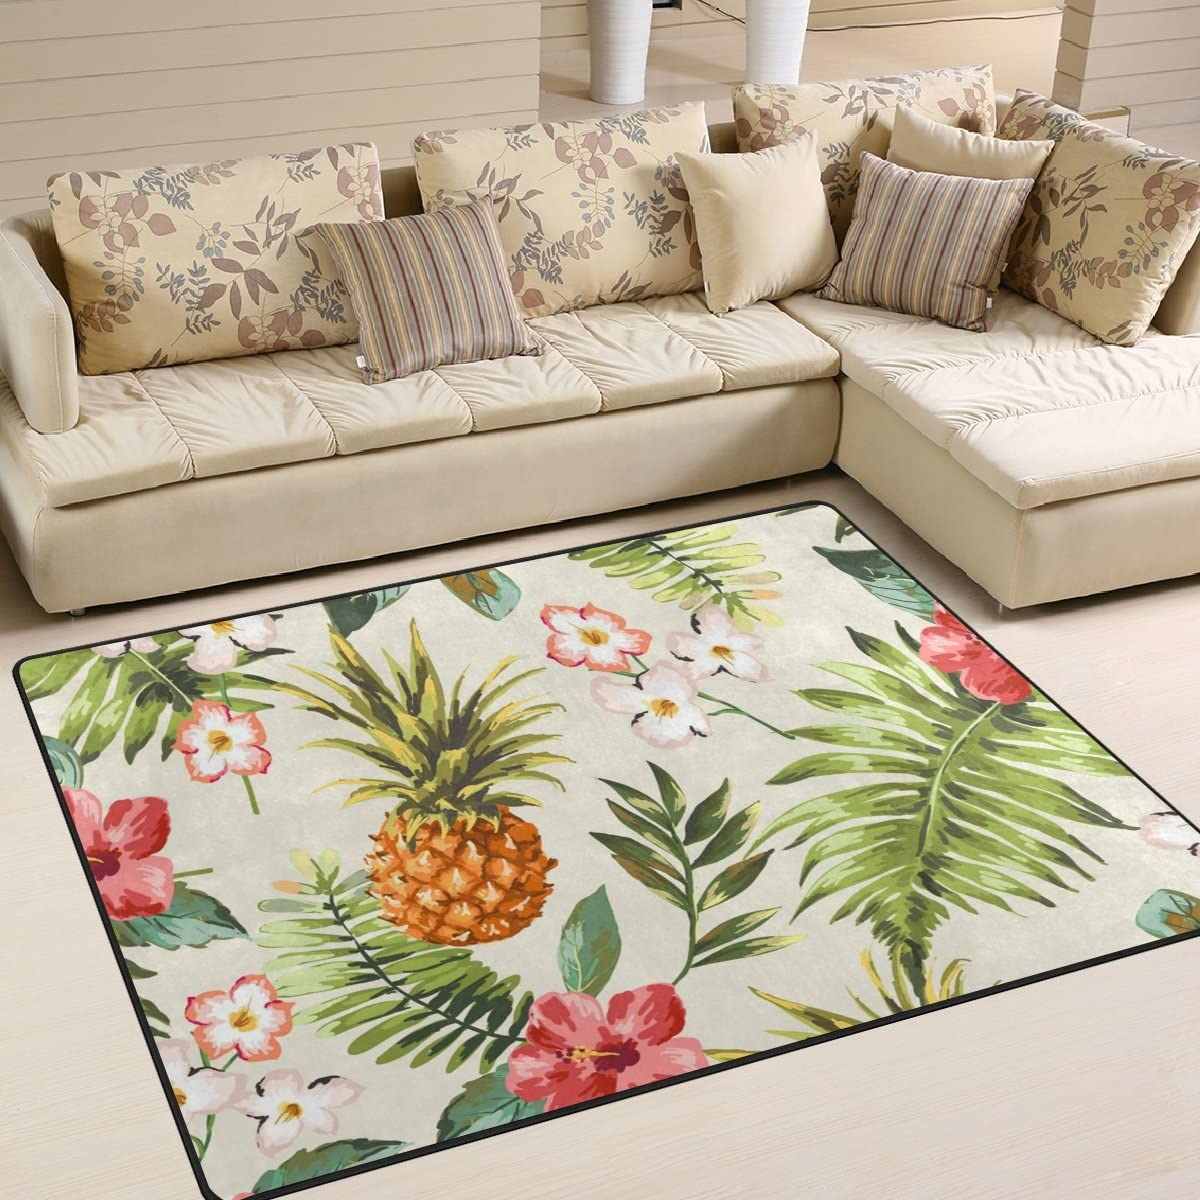 LORVIES Vintage Tropical Flowers with Pineapple Area Rug Carpet Non-Slip Floor Mat Doormats for Living Room Bedroom 80 x 58 inches